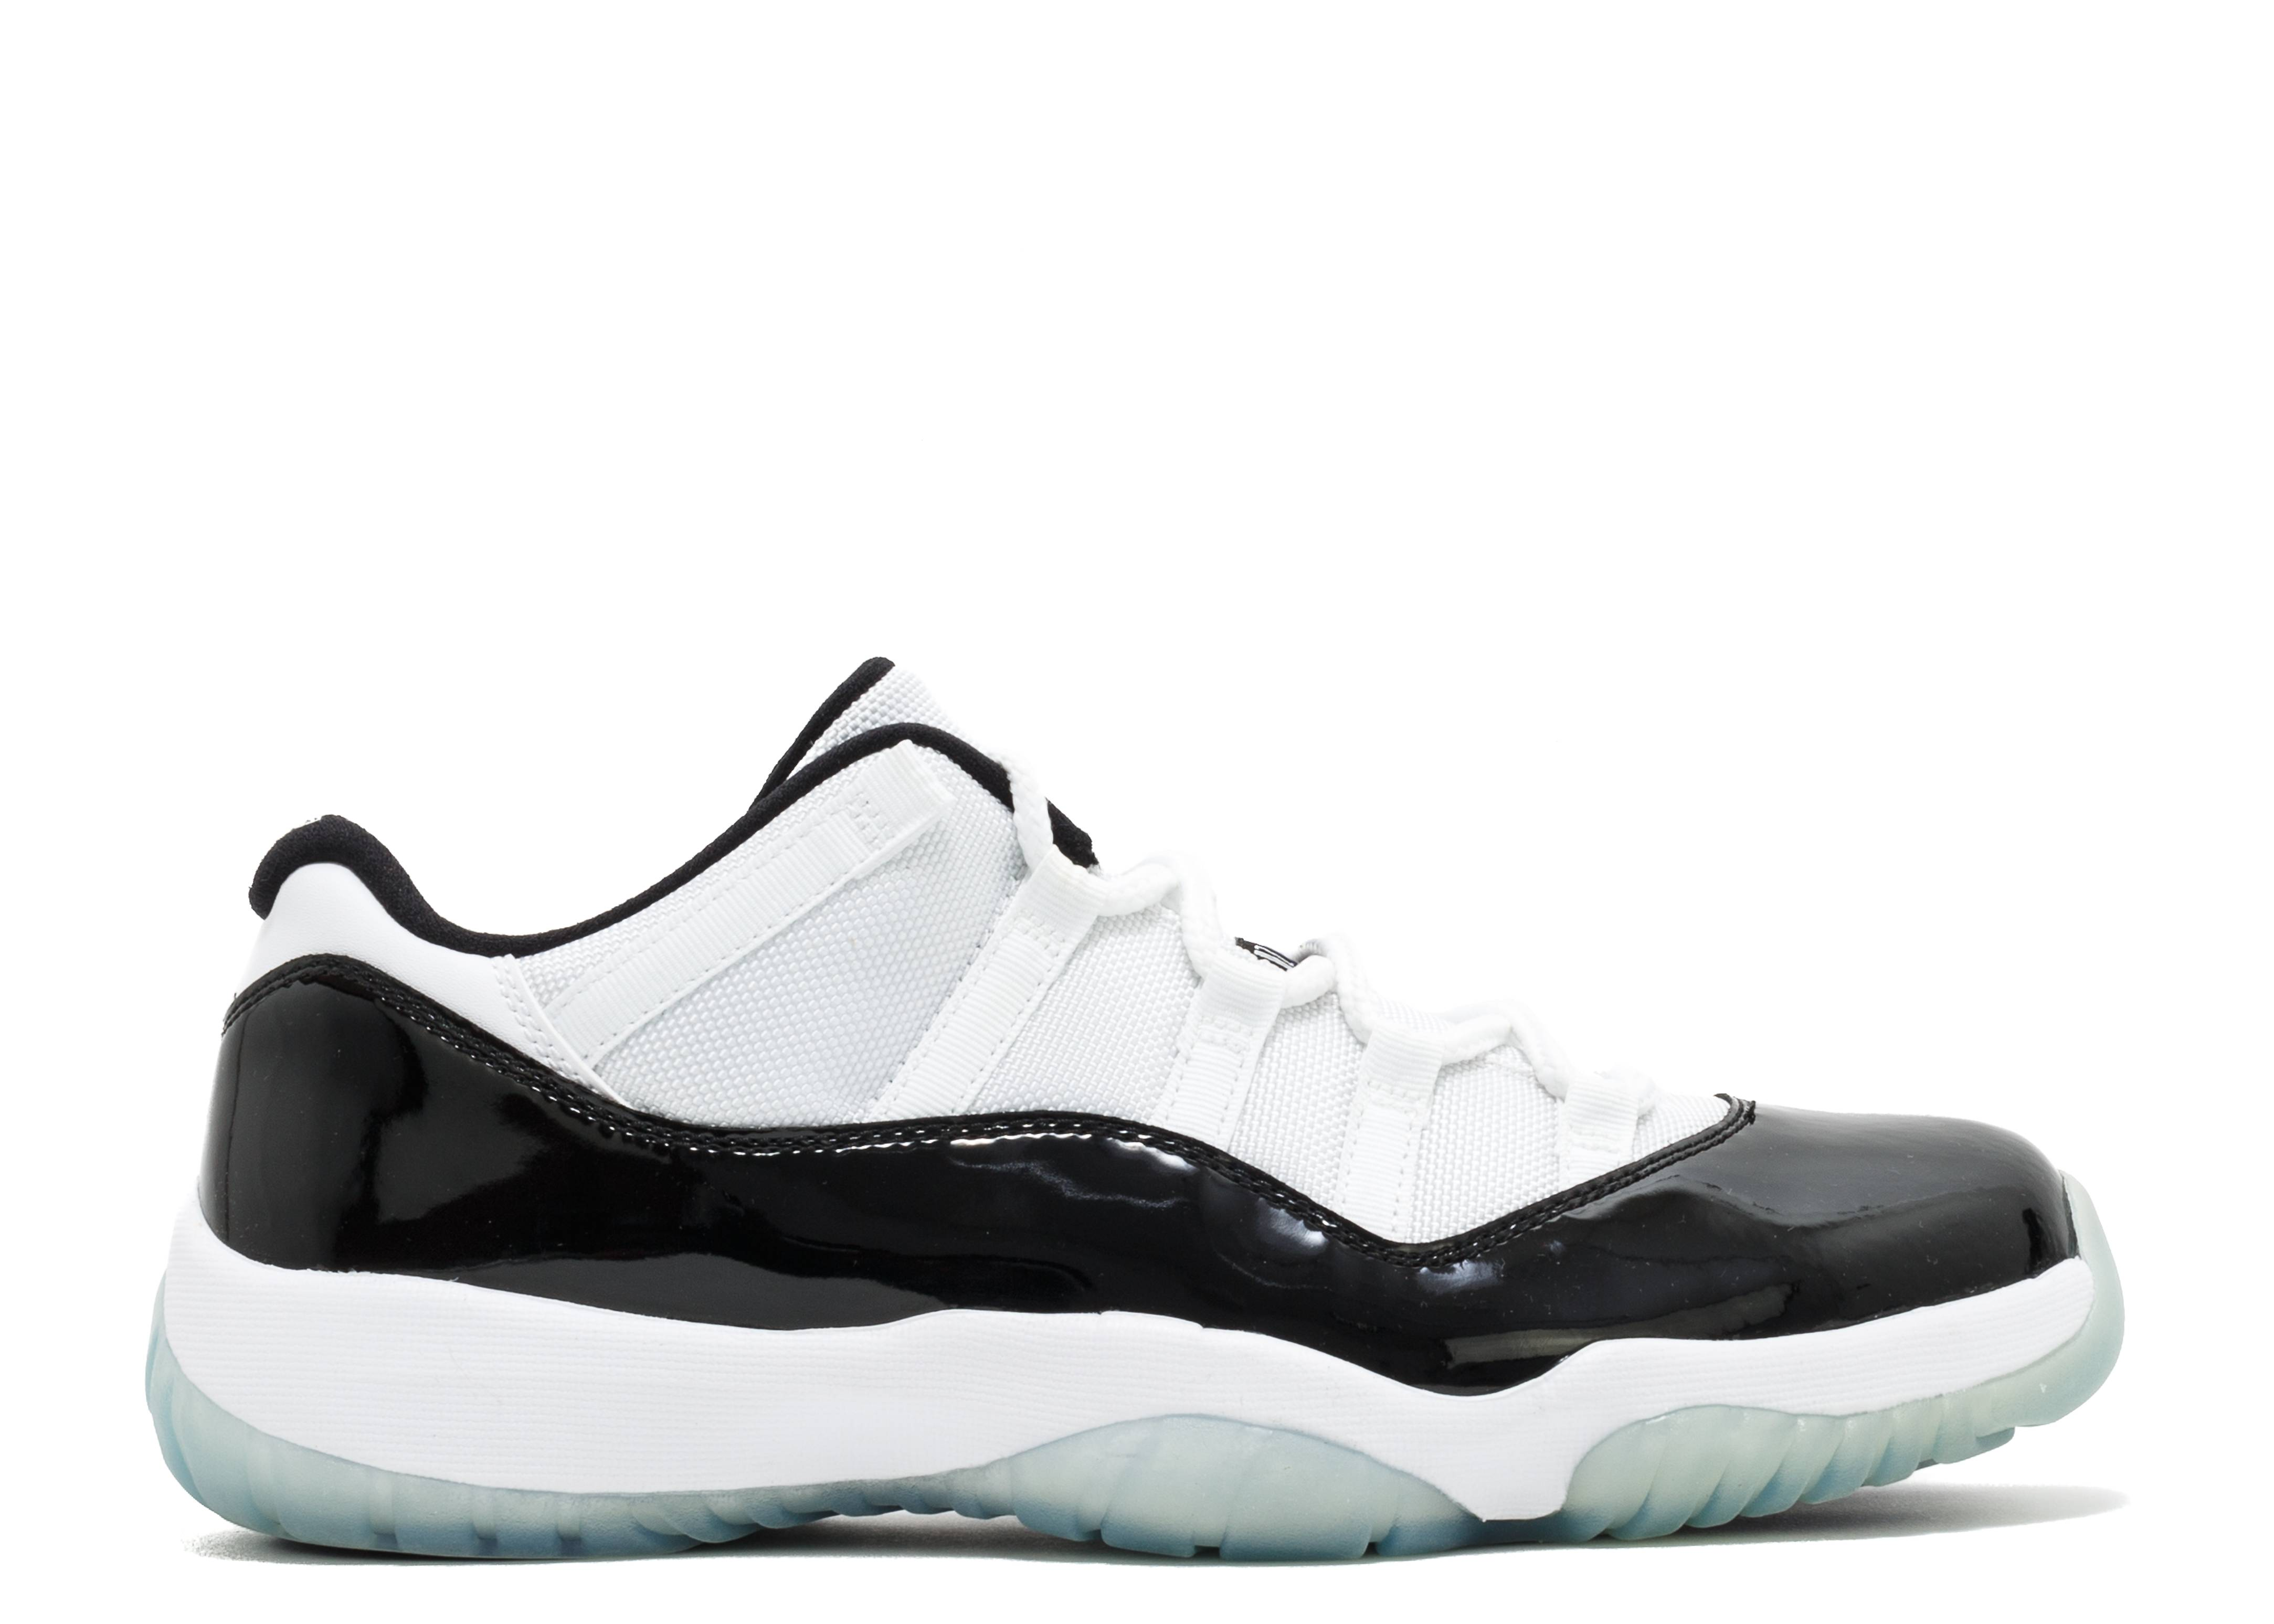 air jordan 11 concord low top